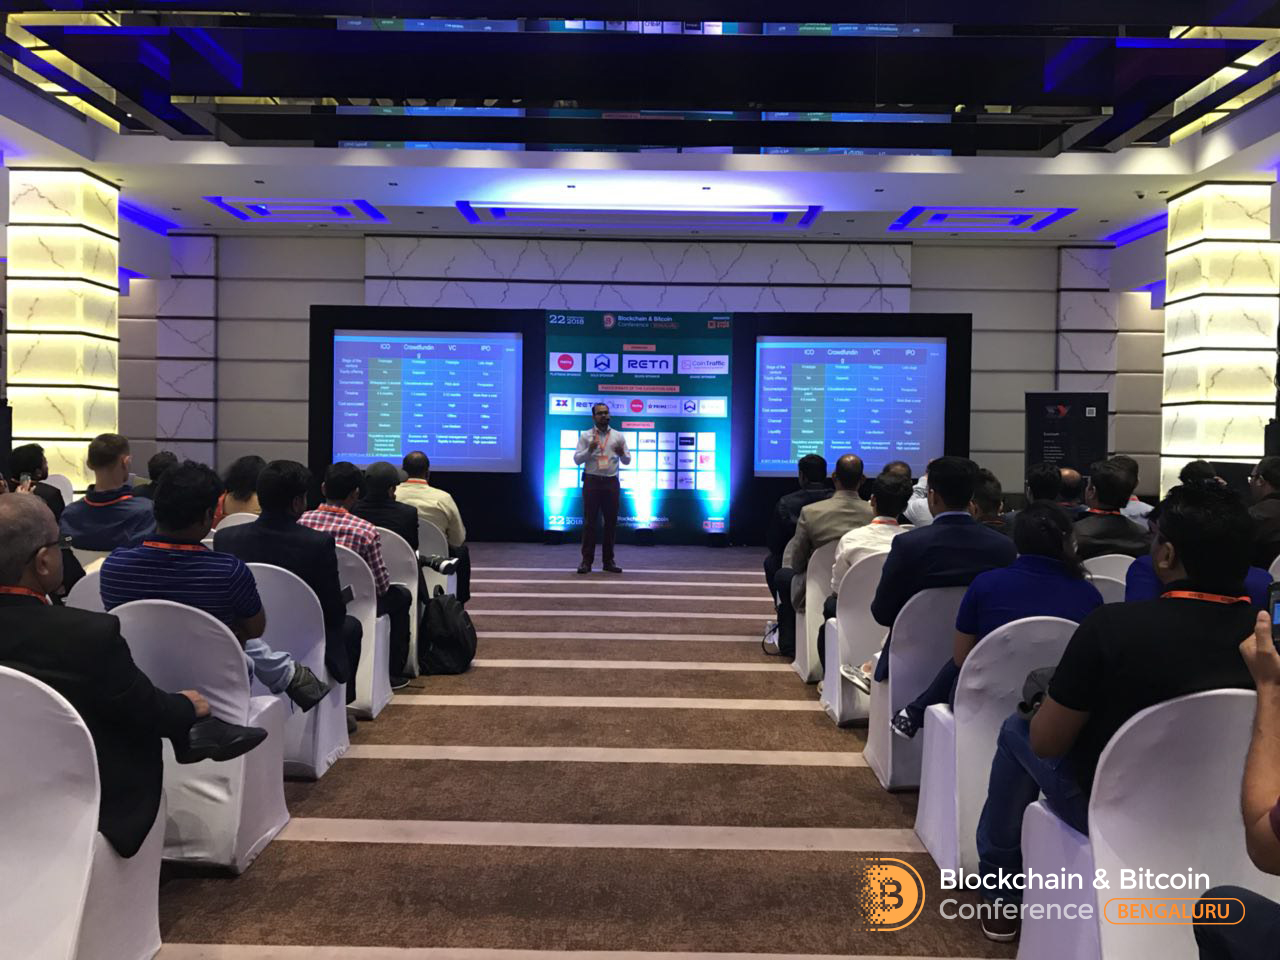 Blockchain & Bitcoin Conference Bengaluru discussed new laws in India that might touch ICO and blockchain - 2